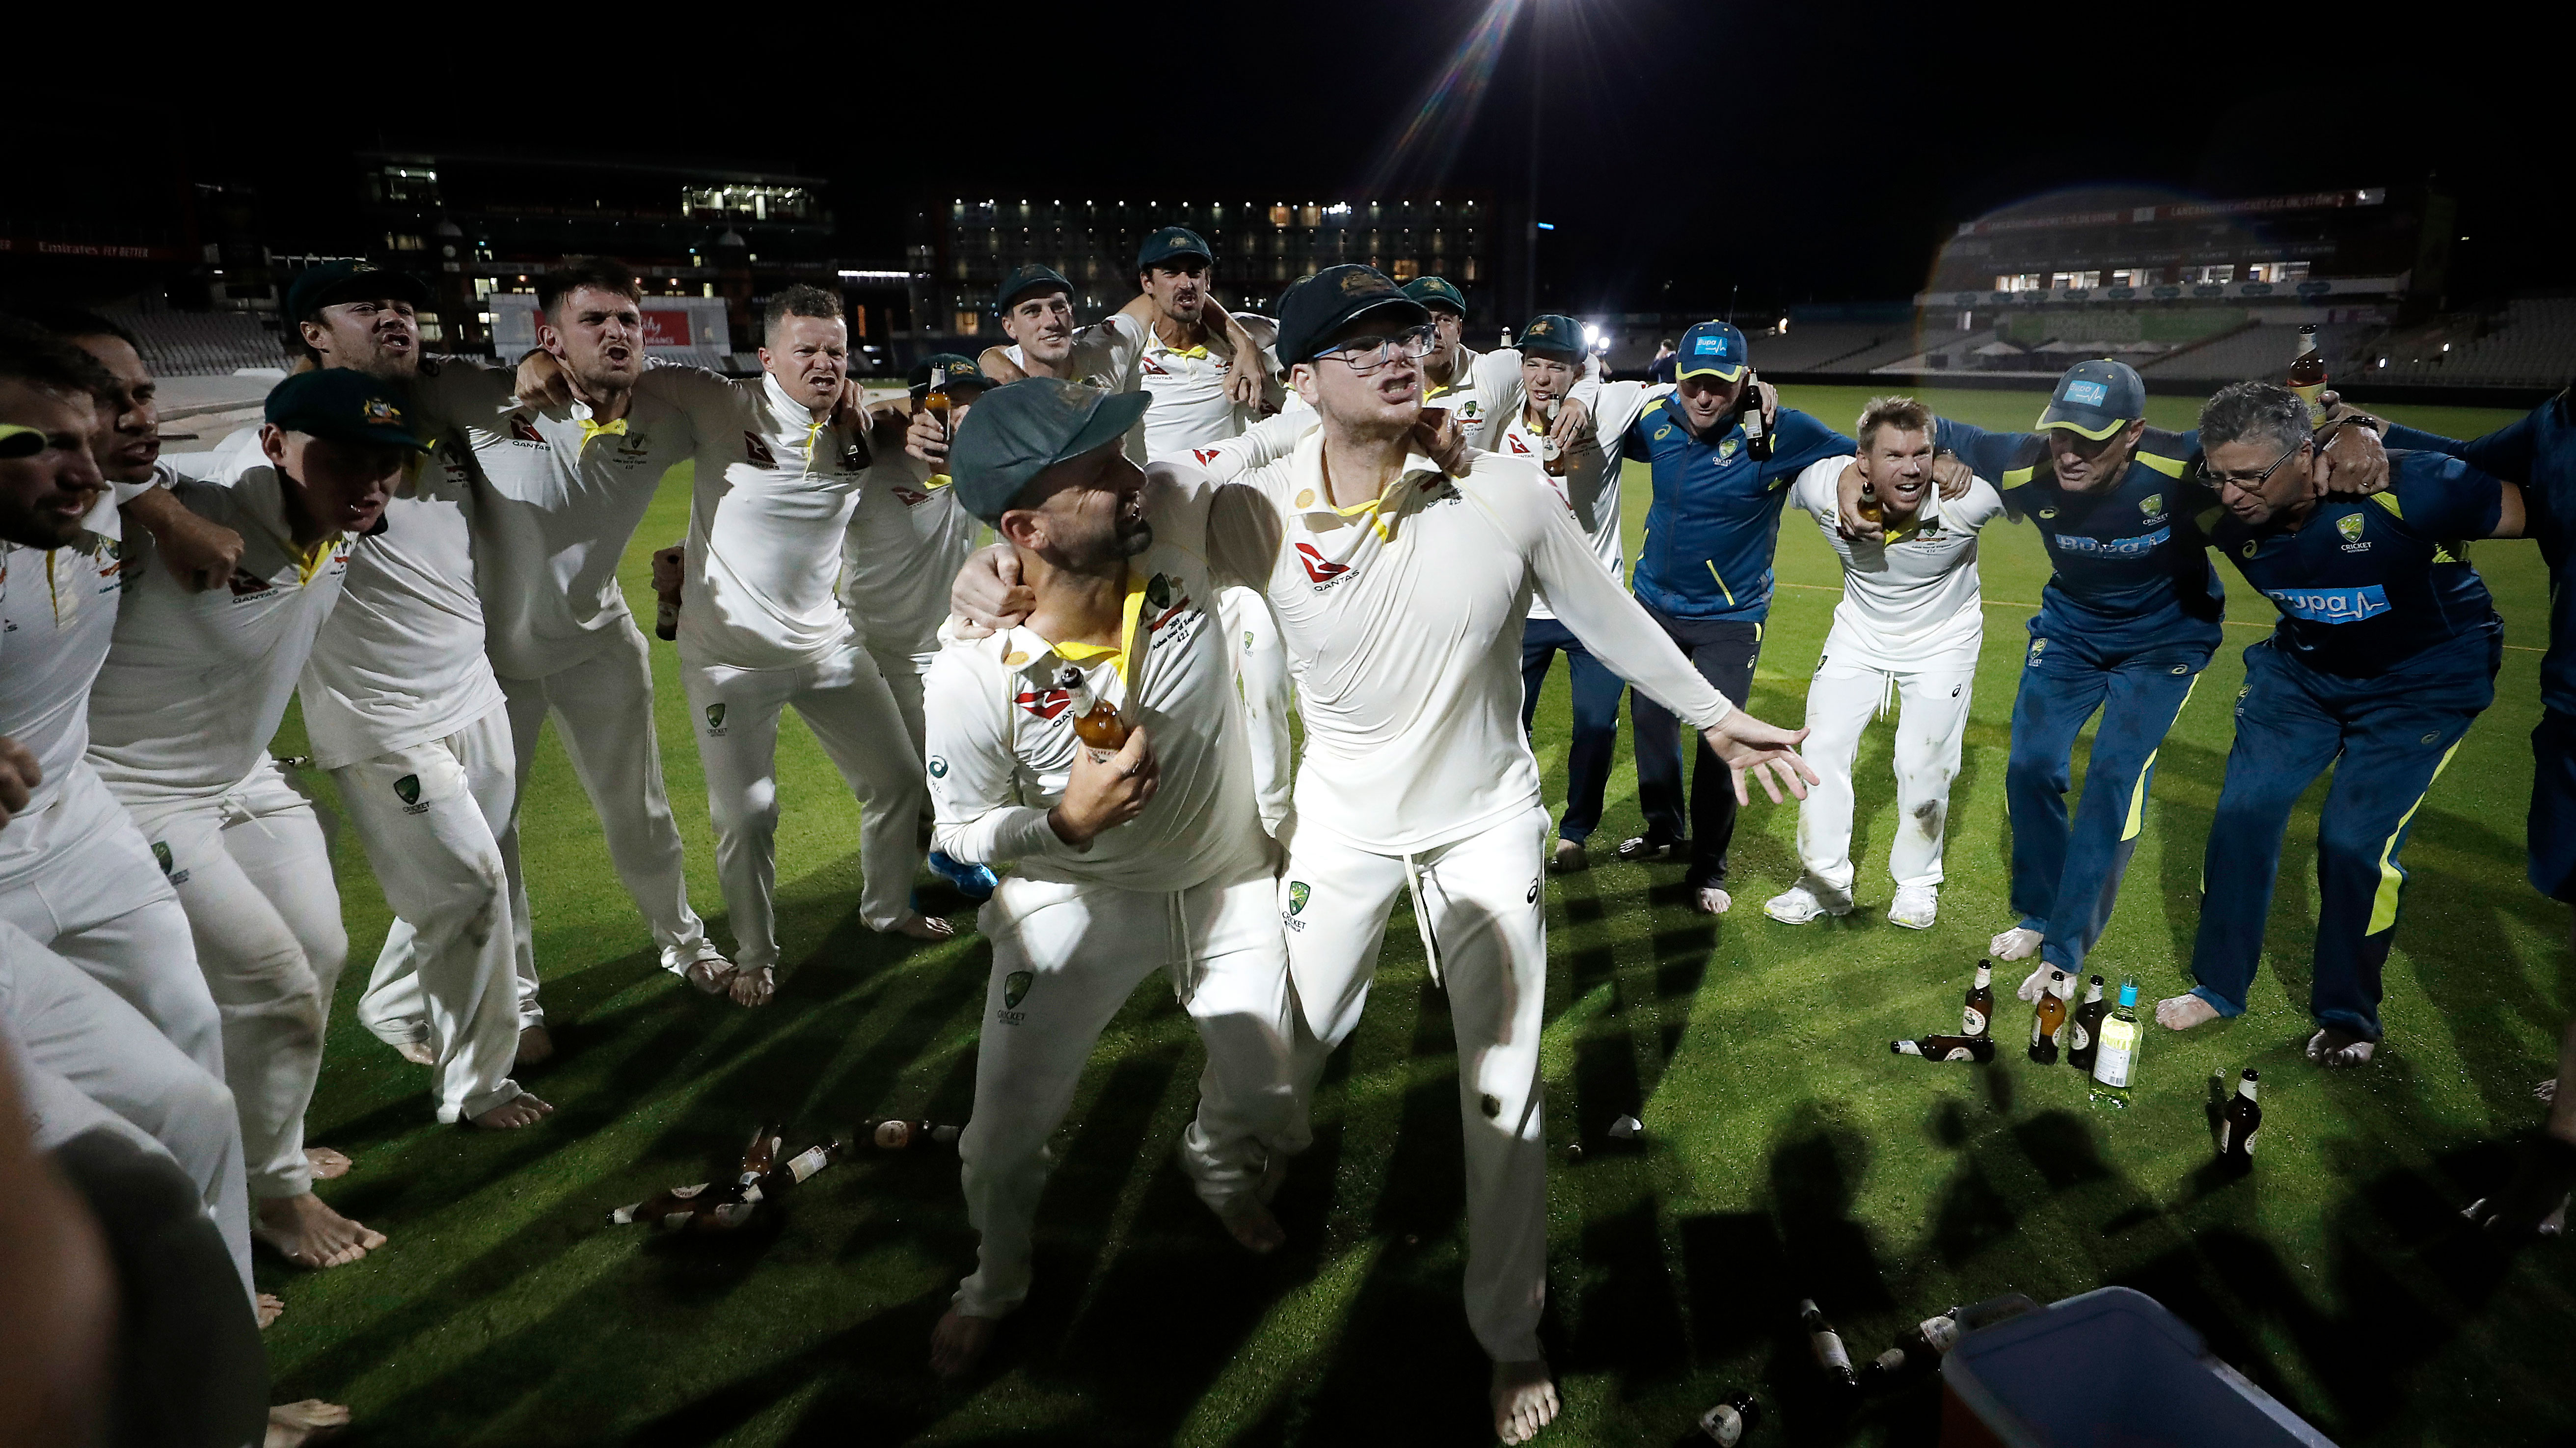 Nathan Lyon and Steve Smith belt out the victory song together in the middle of the Old Trafford pitch, surrounded by teammates.